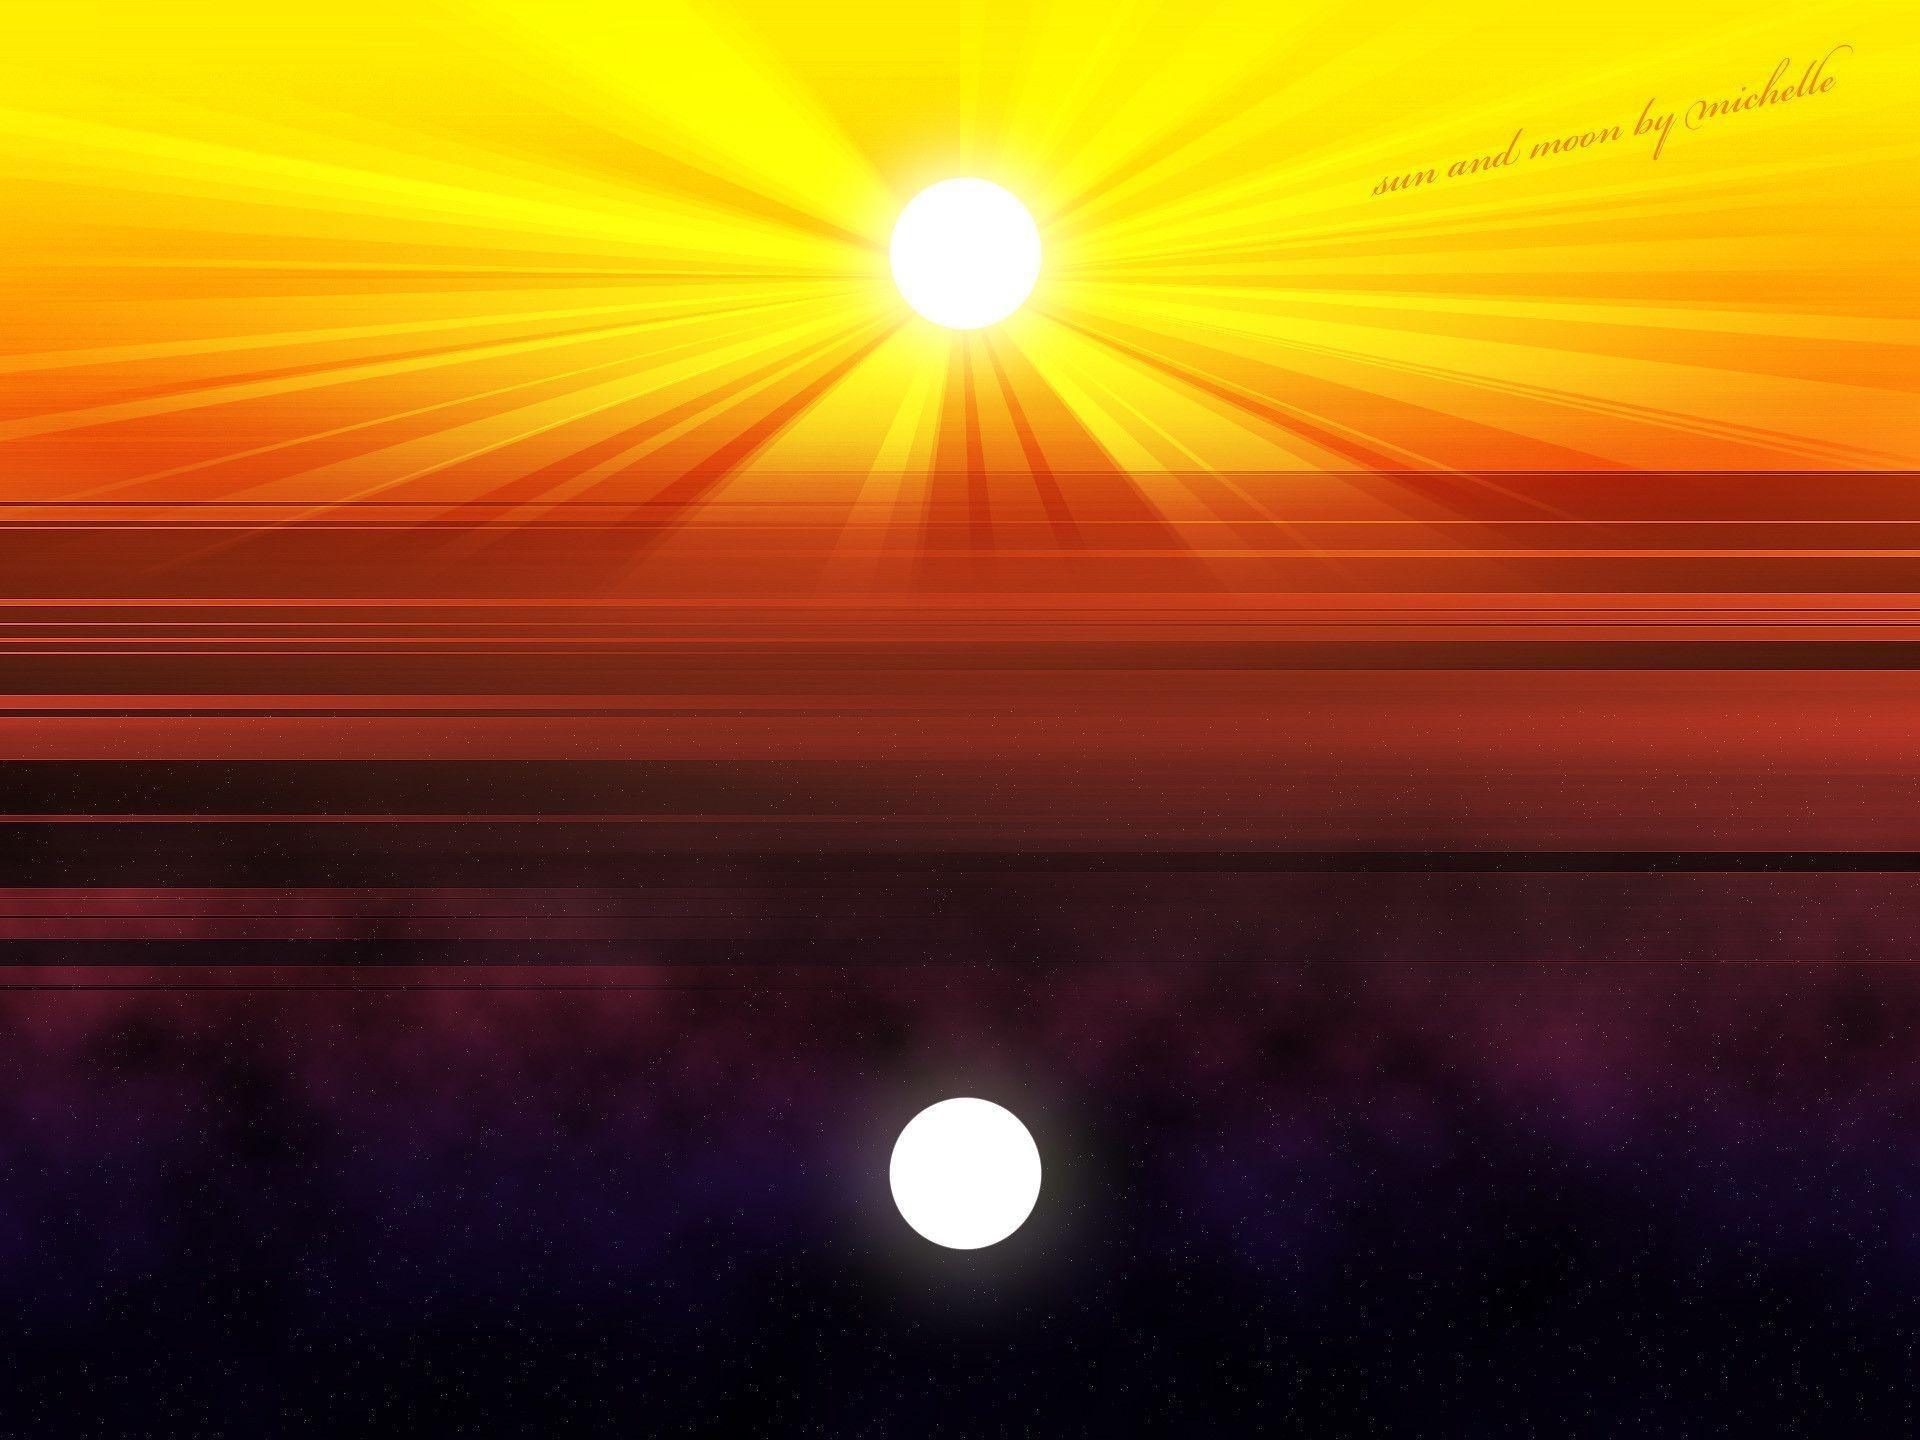 sun and moon backgrounds - wallpaper cave